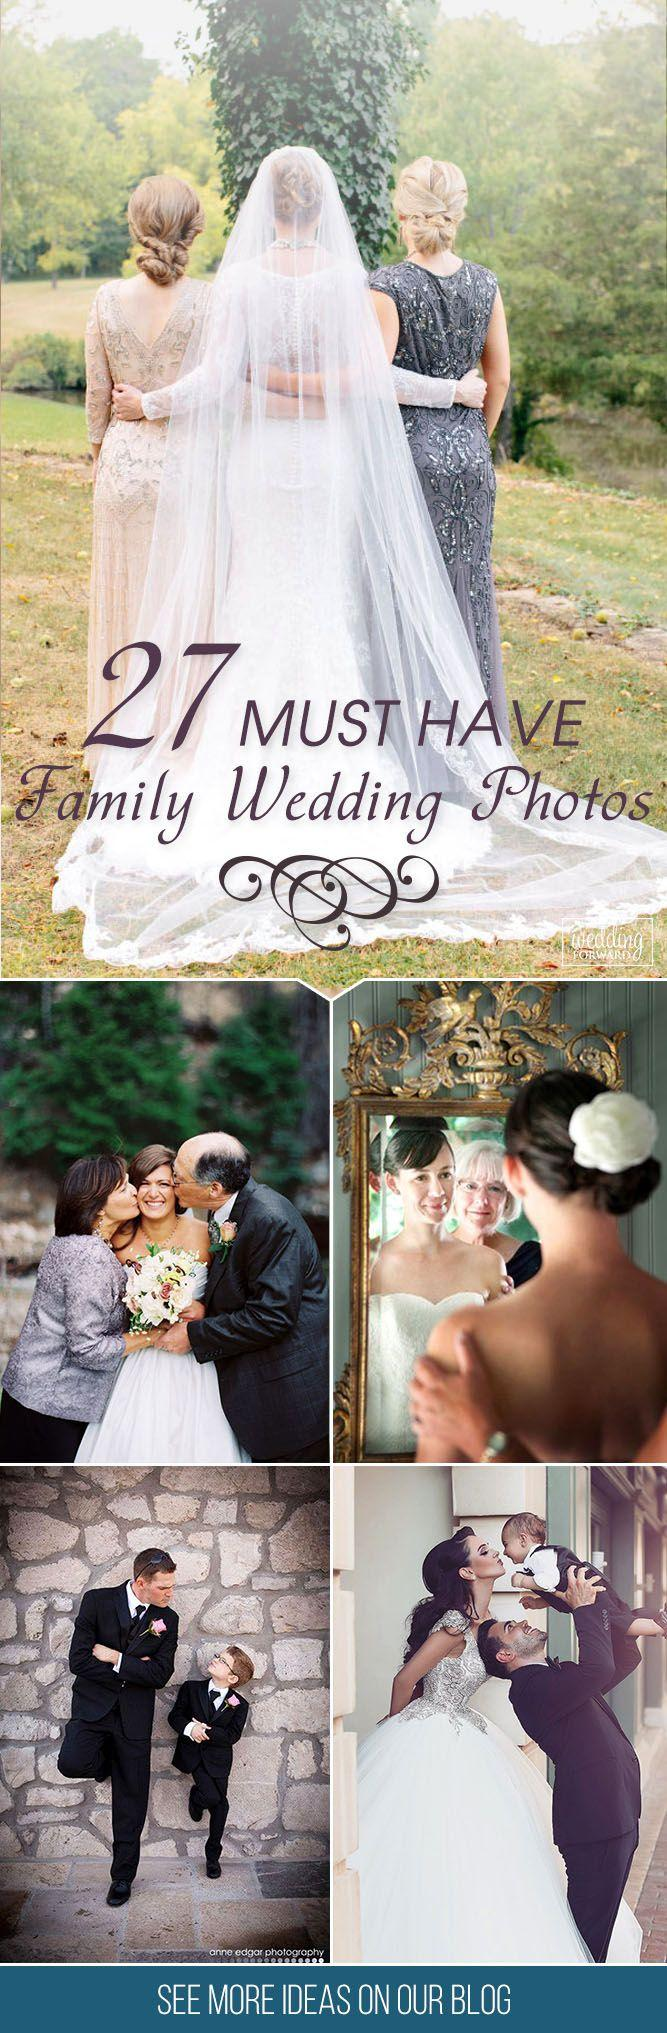 Düğün - 36 Must Have Family Wedding Photos